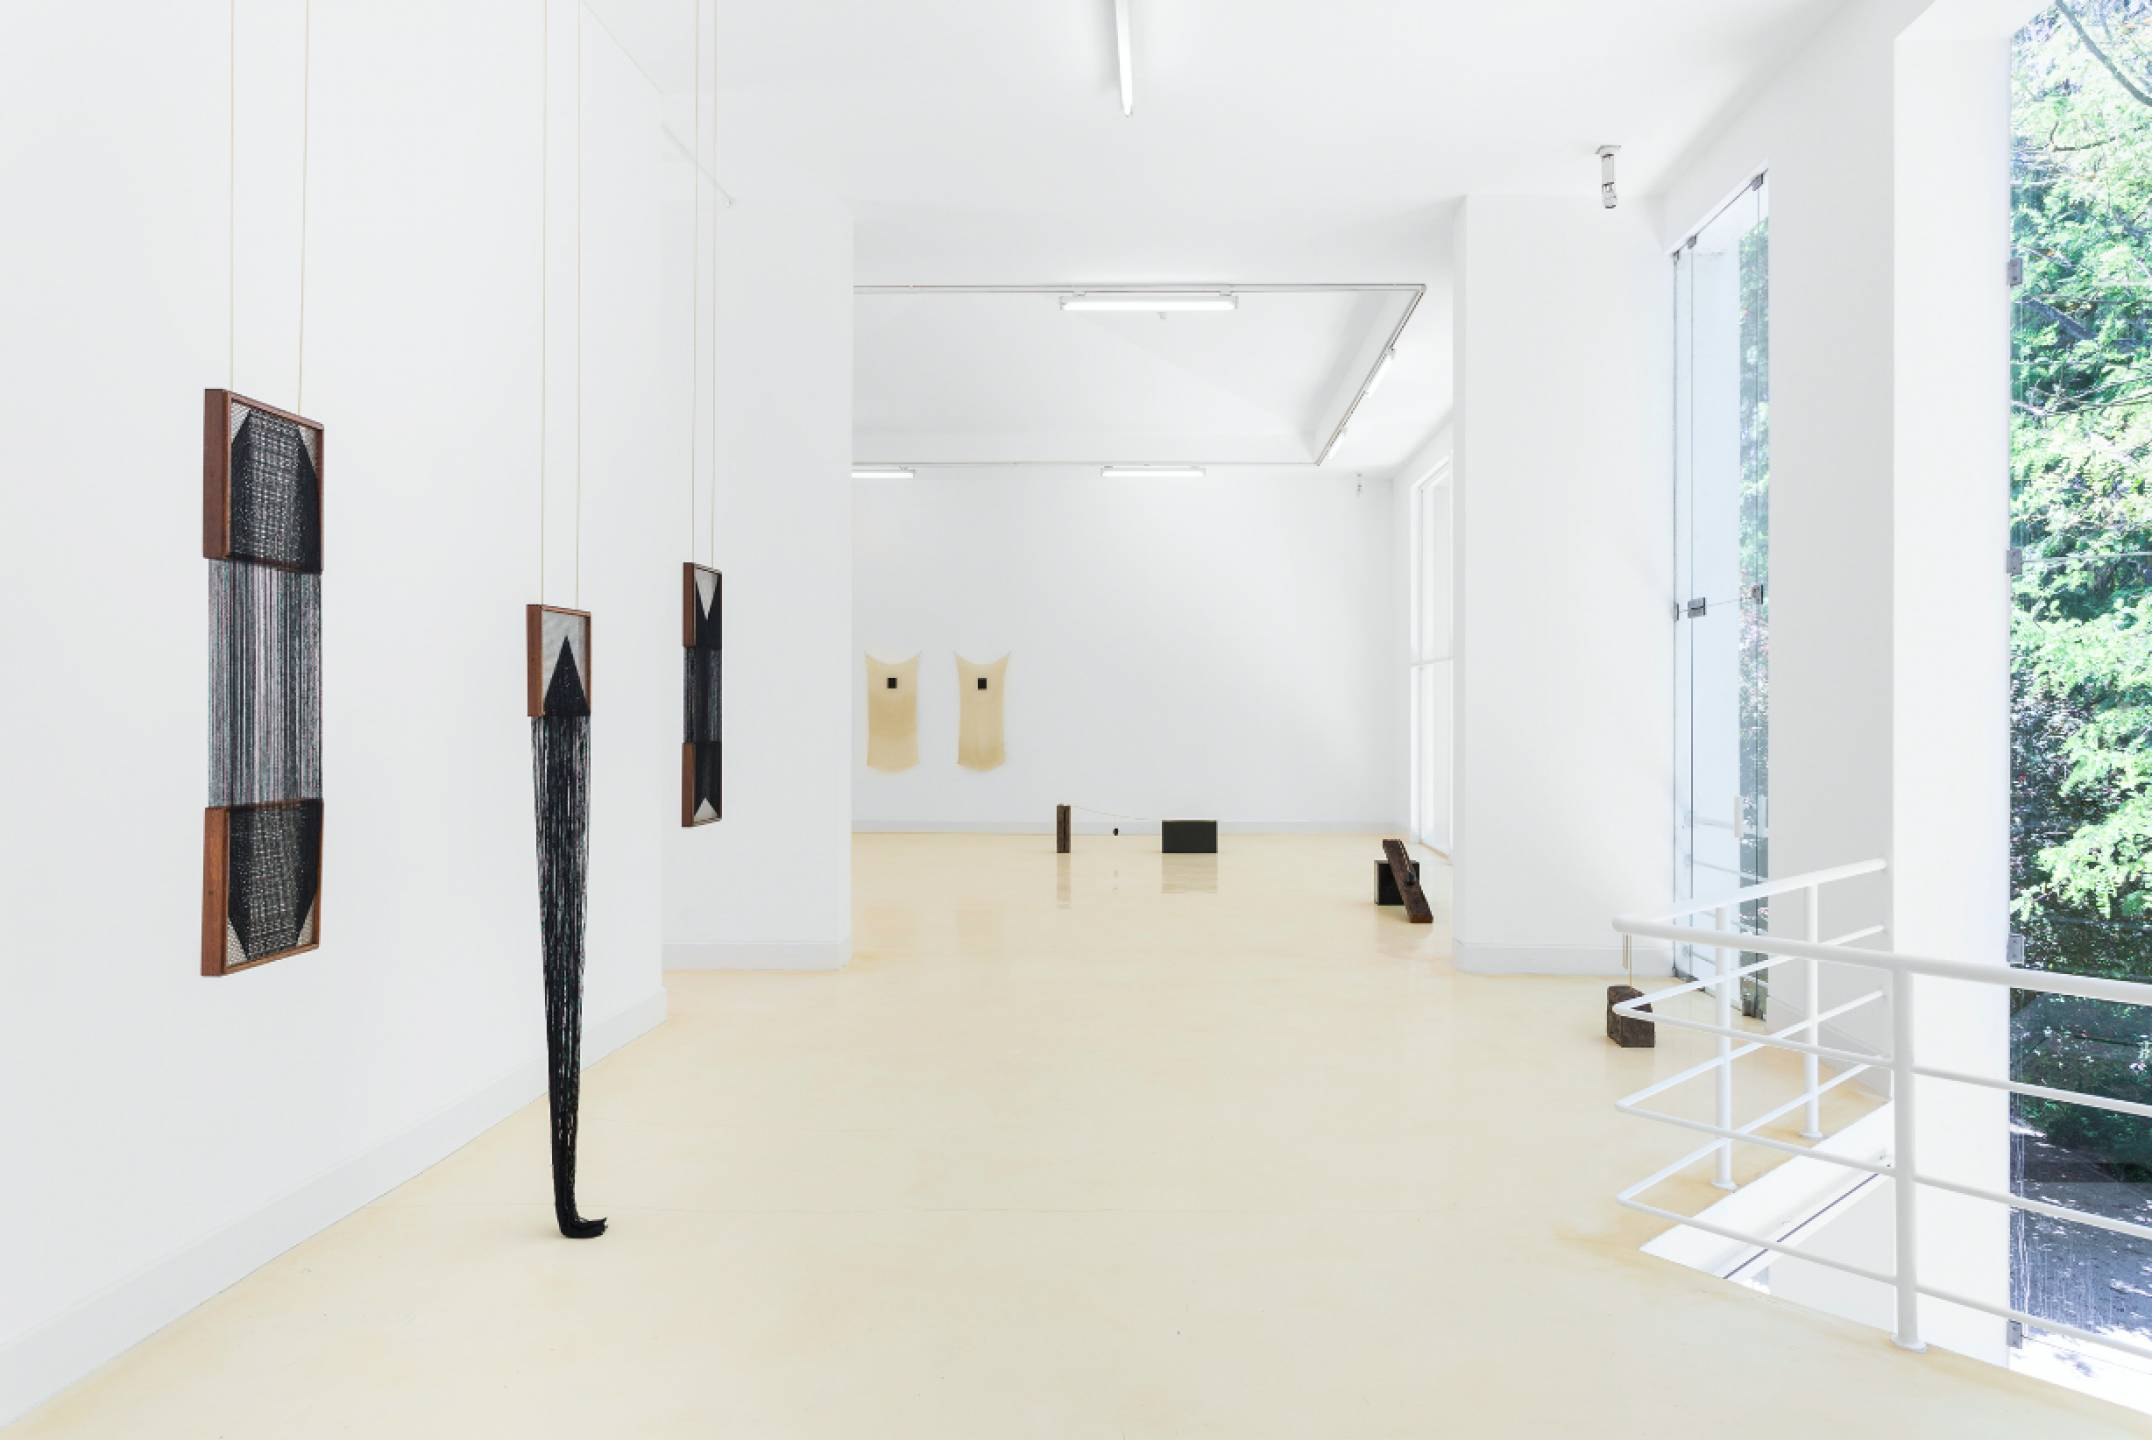 Paloma Bosquê,&nbsp;<em>The Hollow and The Seam</em>, Pavilhão Branco – Museu da Cidade, Lisbon, 2017 - Mendes Wood DM